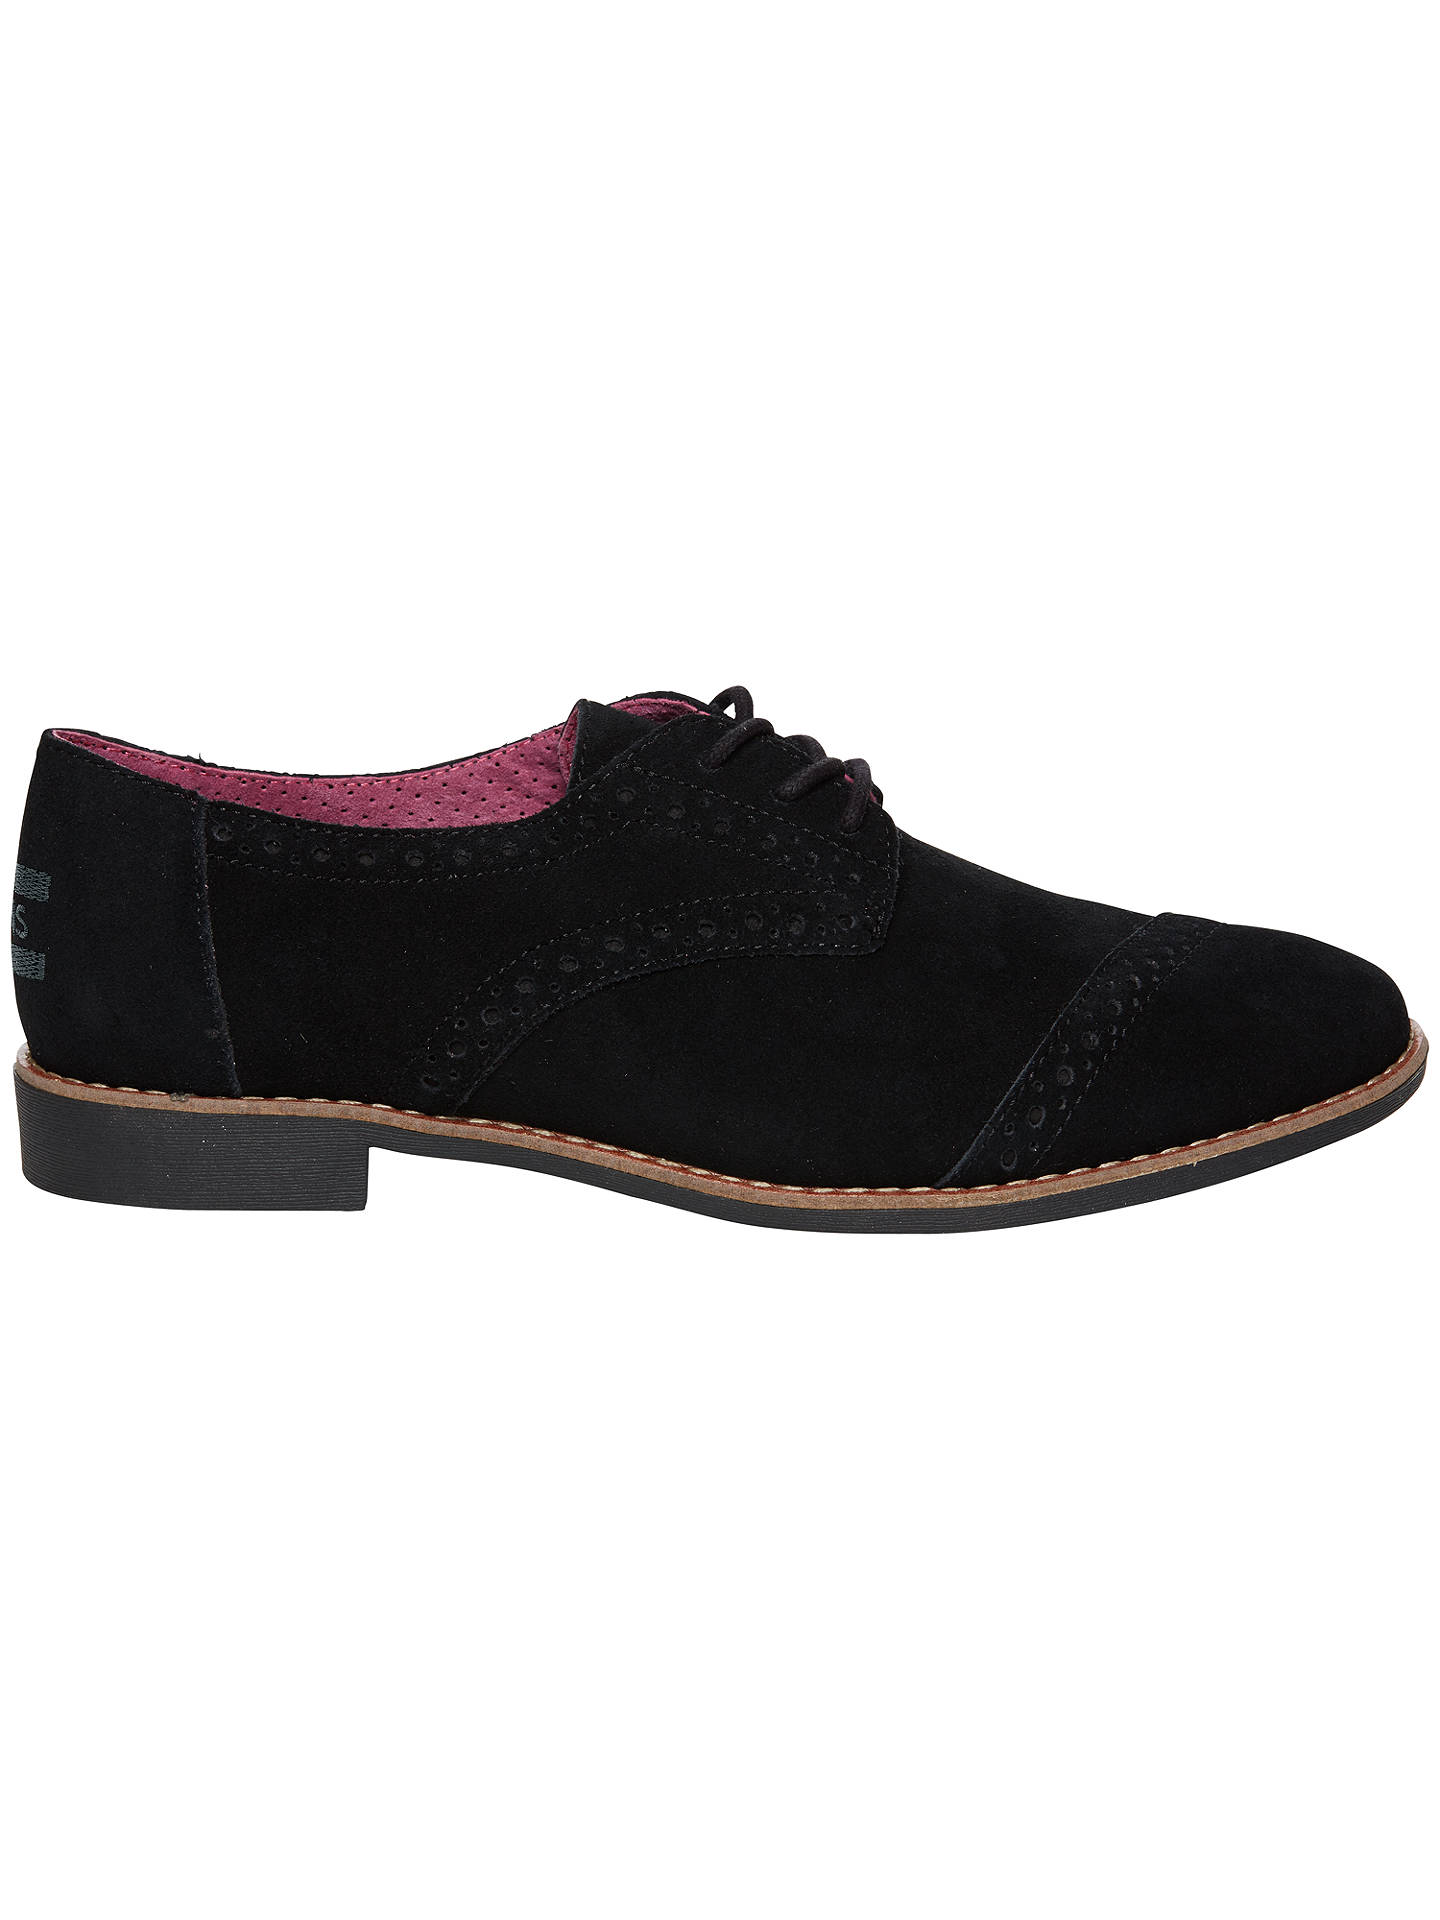 d26e559a8c6 TOMS Suede Leather Brogue Shoes at John Lewis   Partners